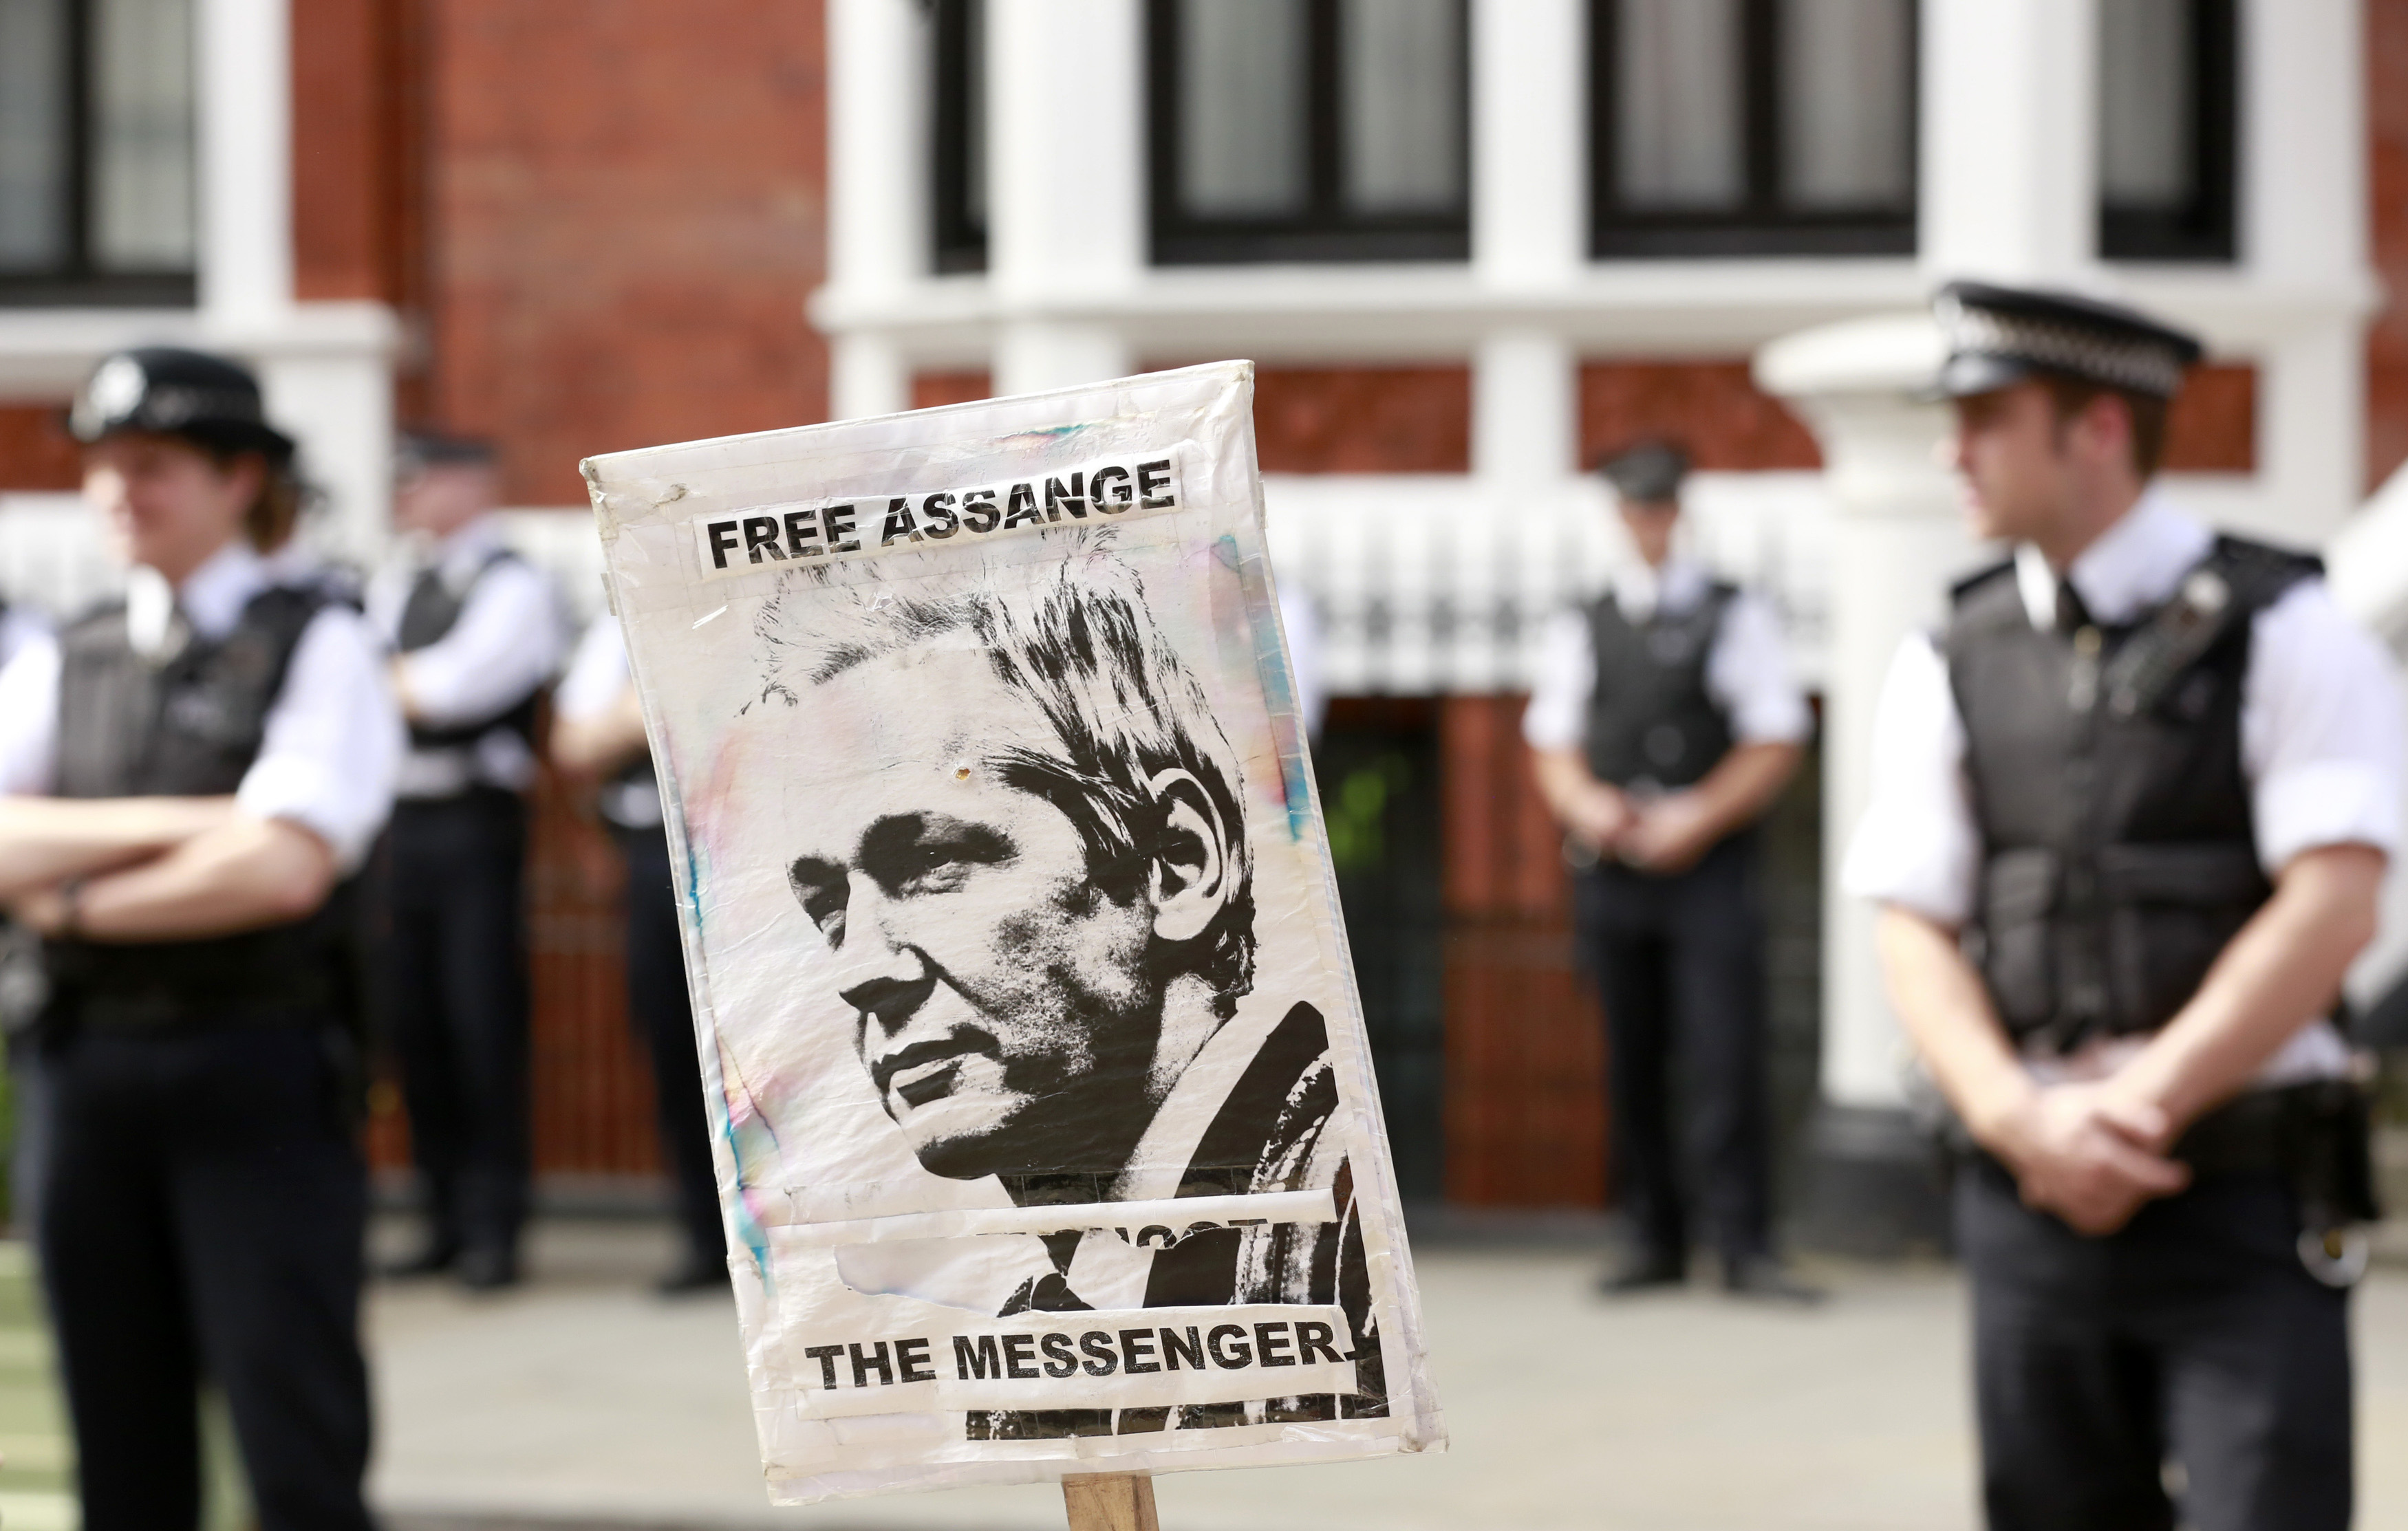 Police and protesters wait for Wikileaks founder Julian Assange to speak to the media outside the Ecuador embassy in west London August 19, 2012.